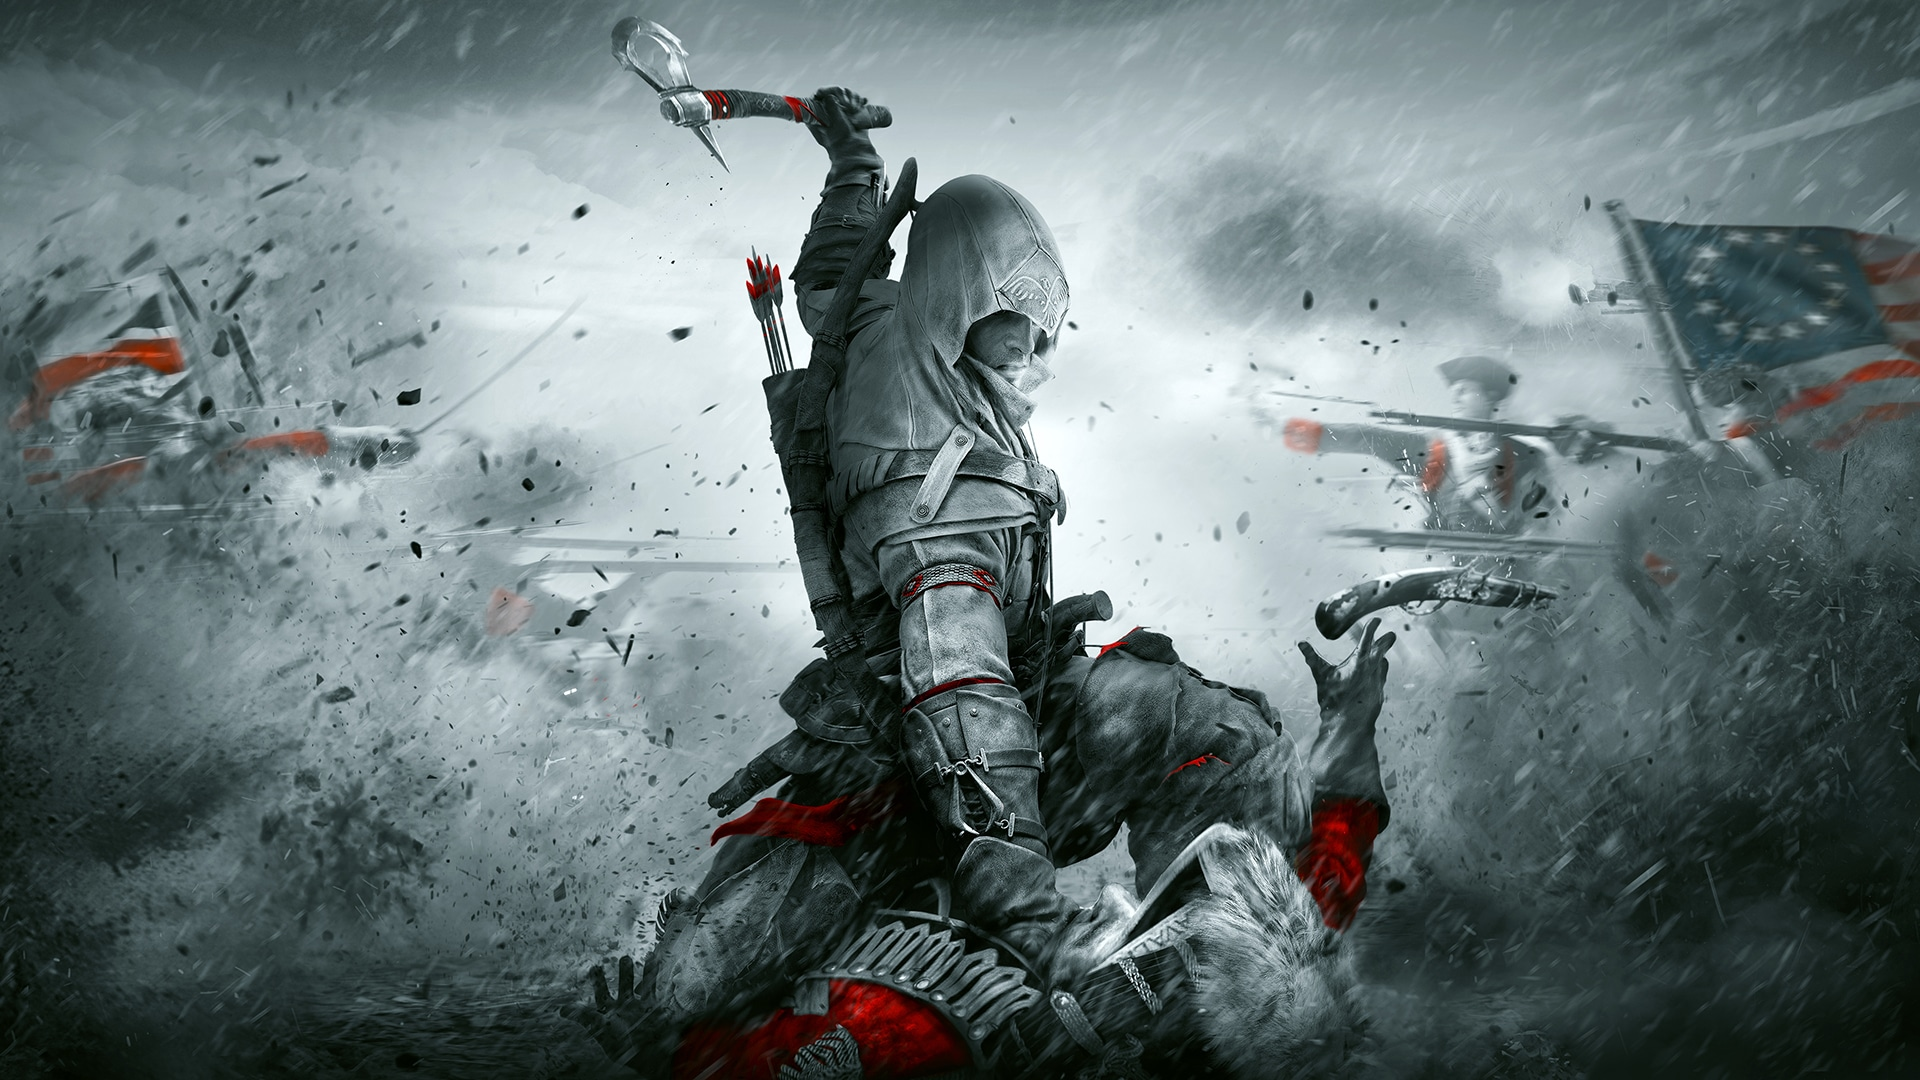 Assassin's Creed III: Remastered – Official Trailer / Assets